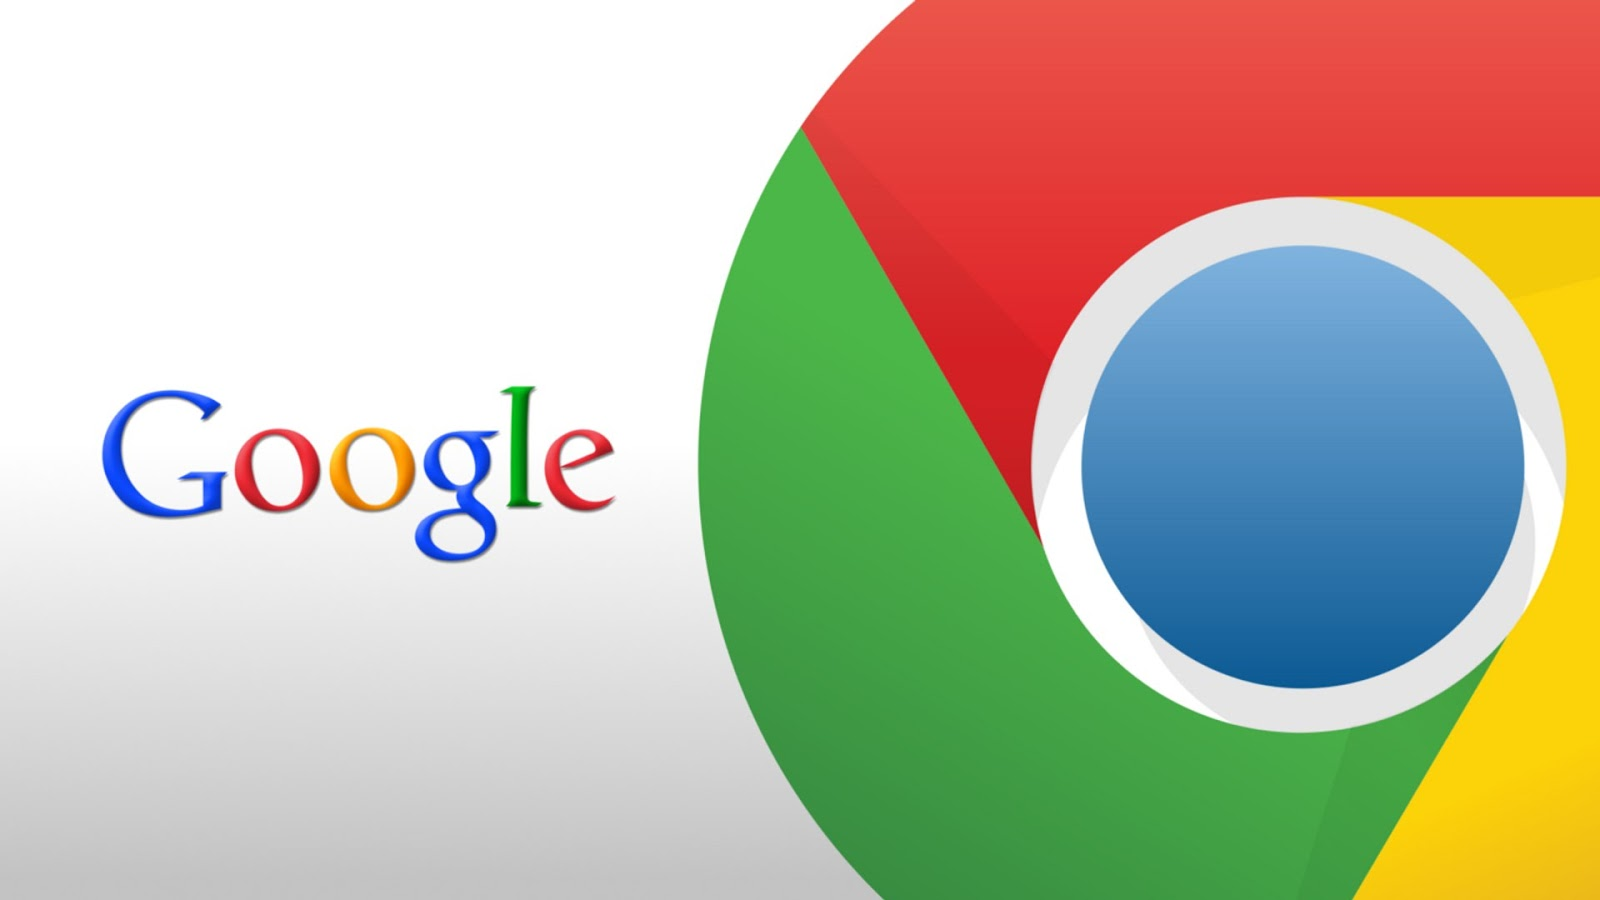 Google Warns 2 Billion Chrome Users About Security Flaws